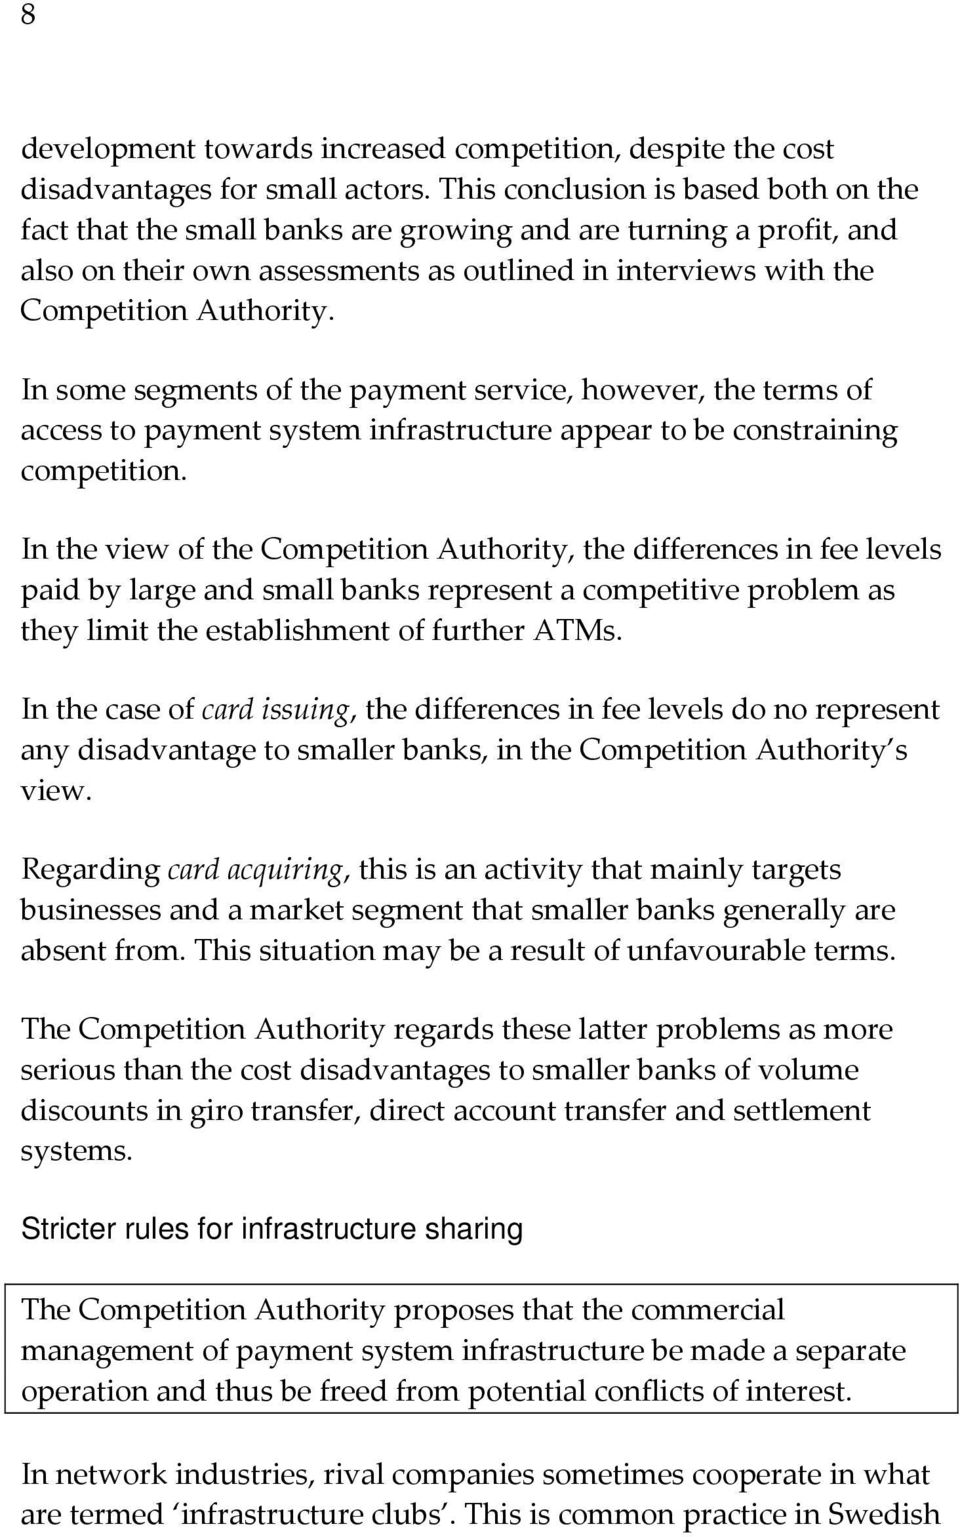 In some segments of the payment service, however, the terms of access to payment system infrastructure appear to be constraining competition.